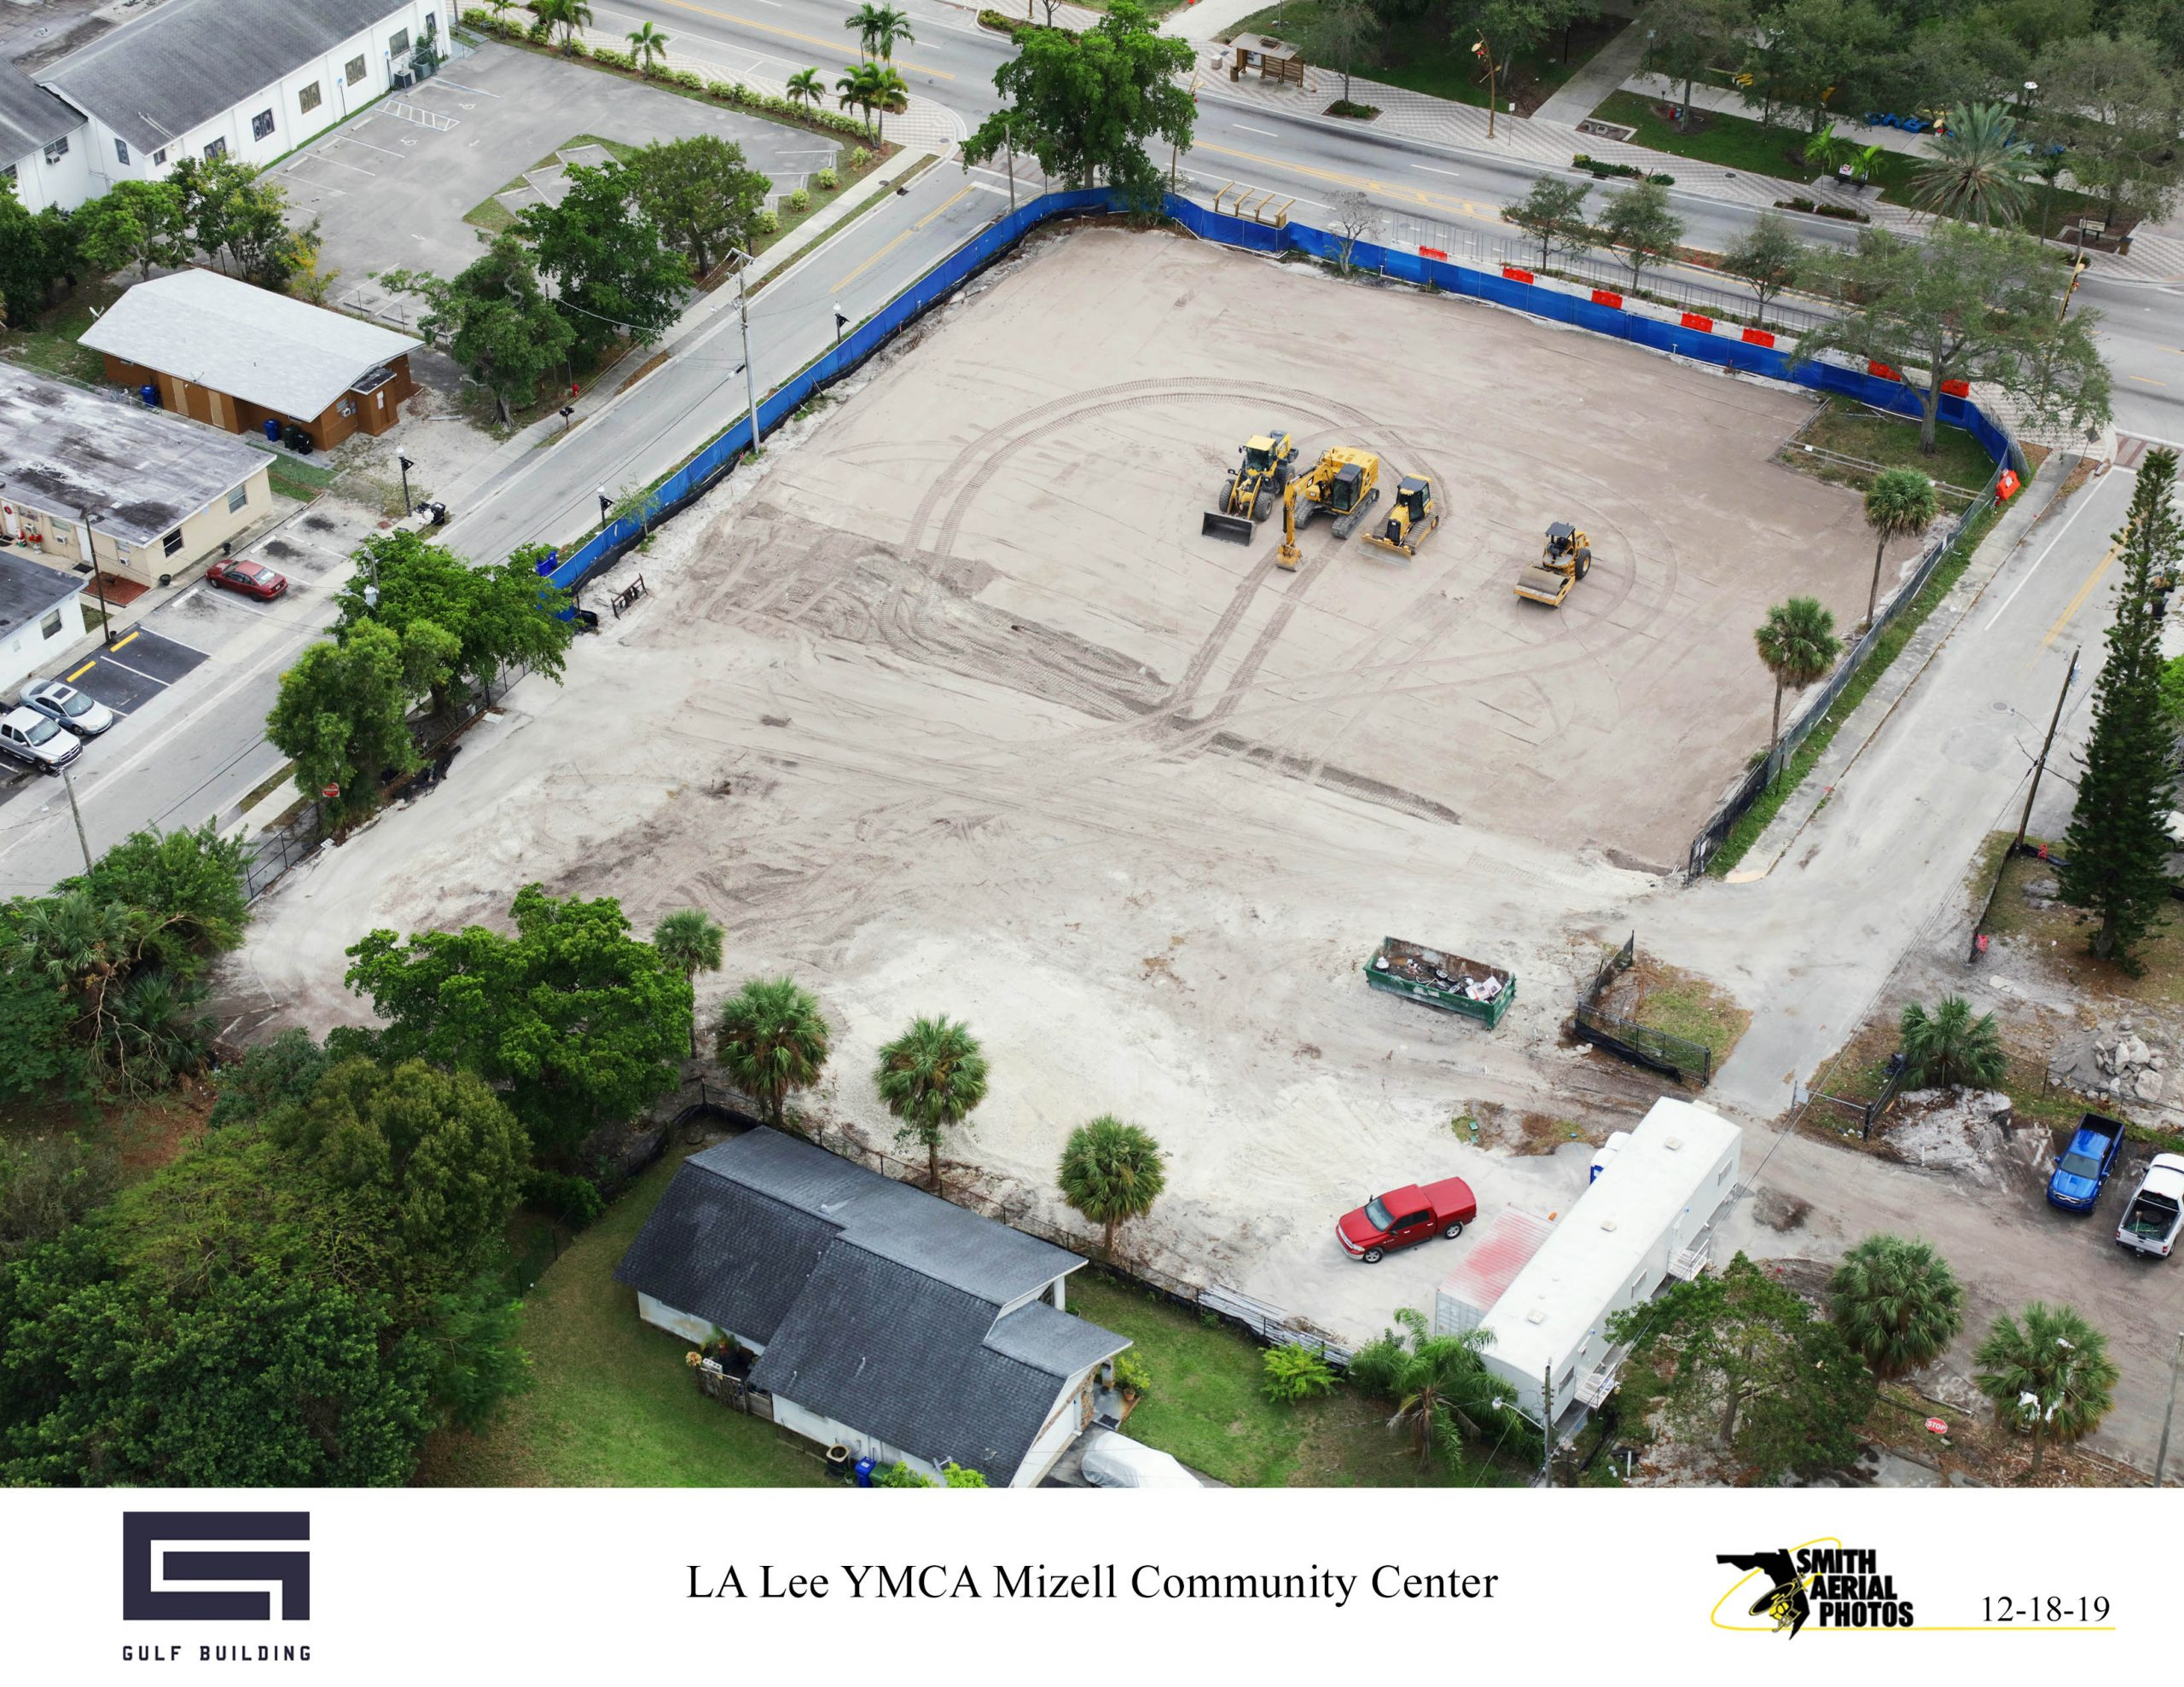 Construction Site Drone View December 15, 2019